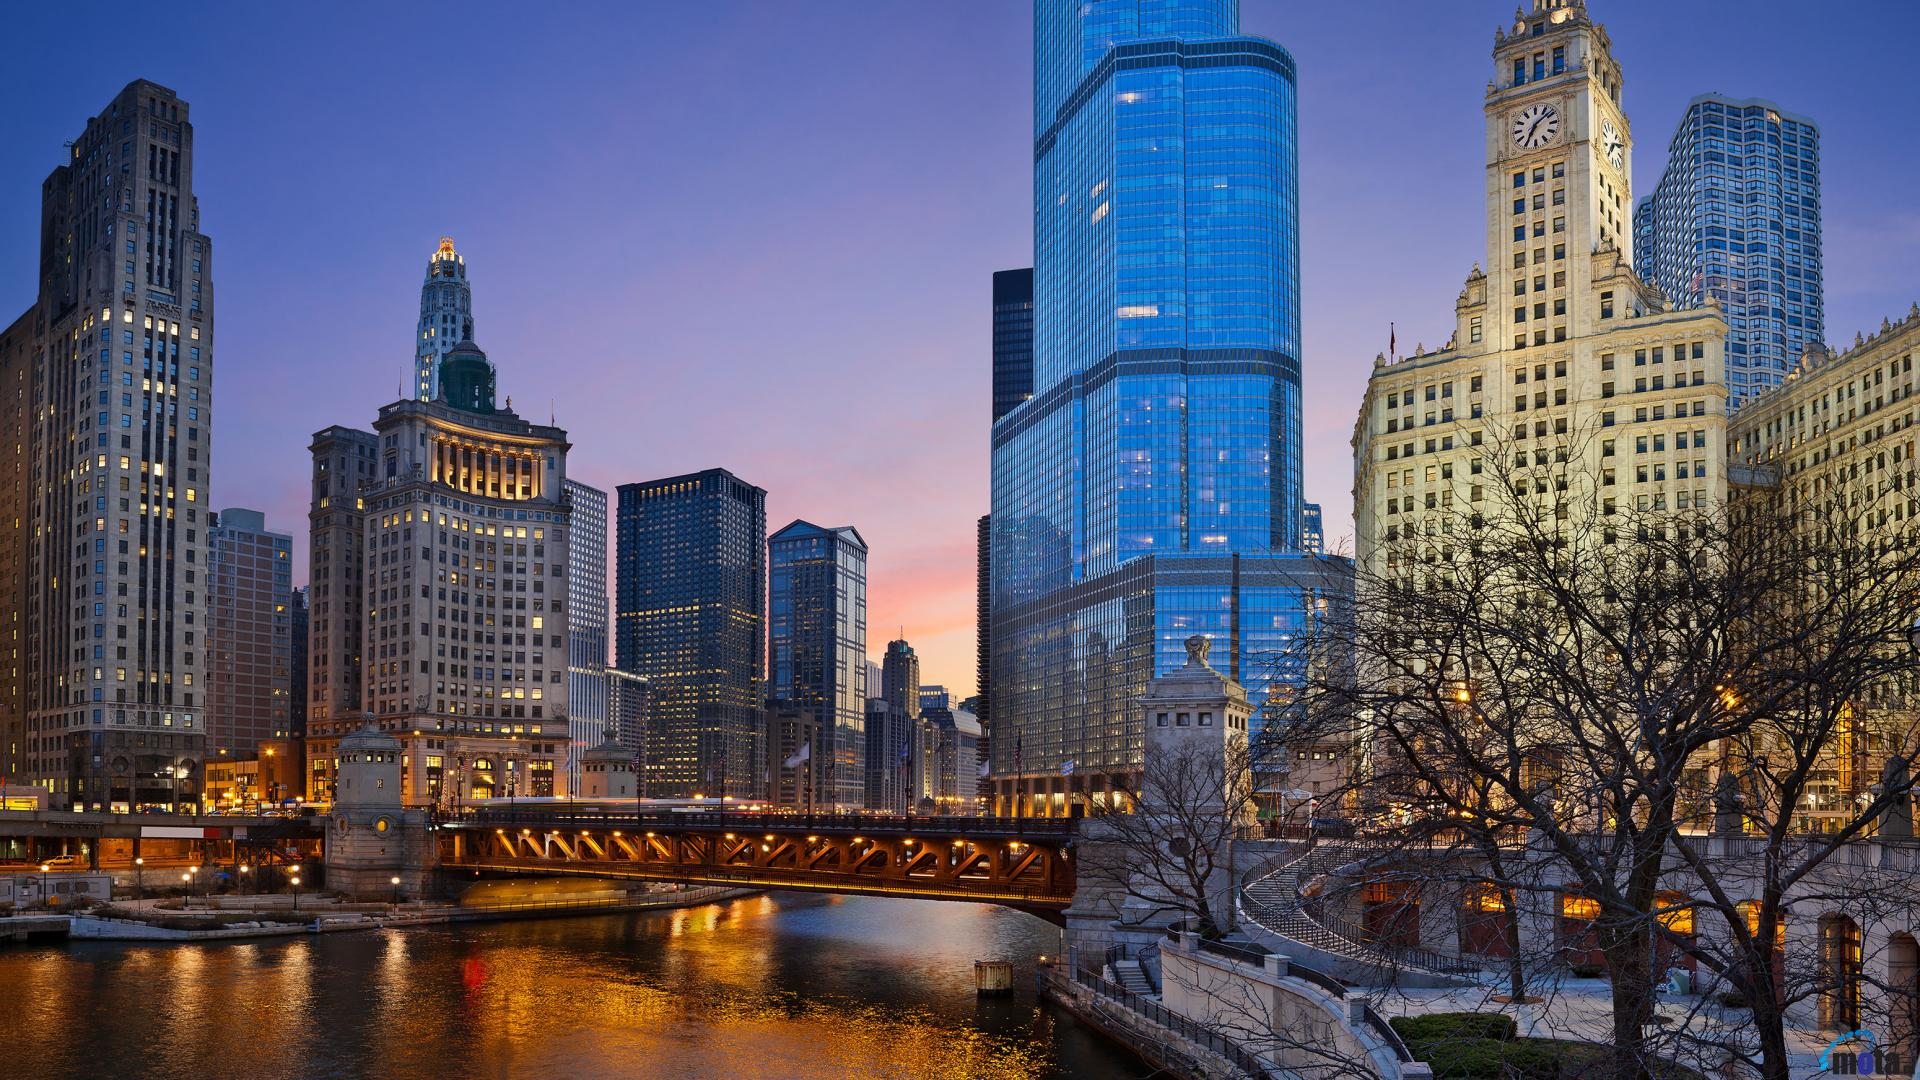 Download Wallpaper Evening Chicago Illinois state 1920 x 1920x1080